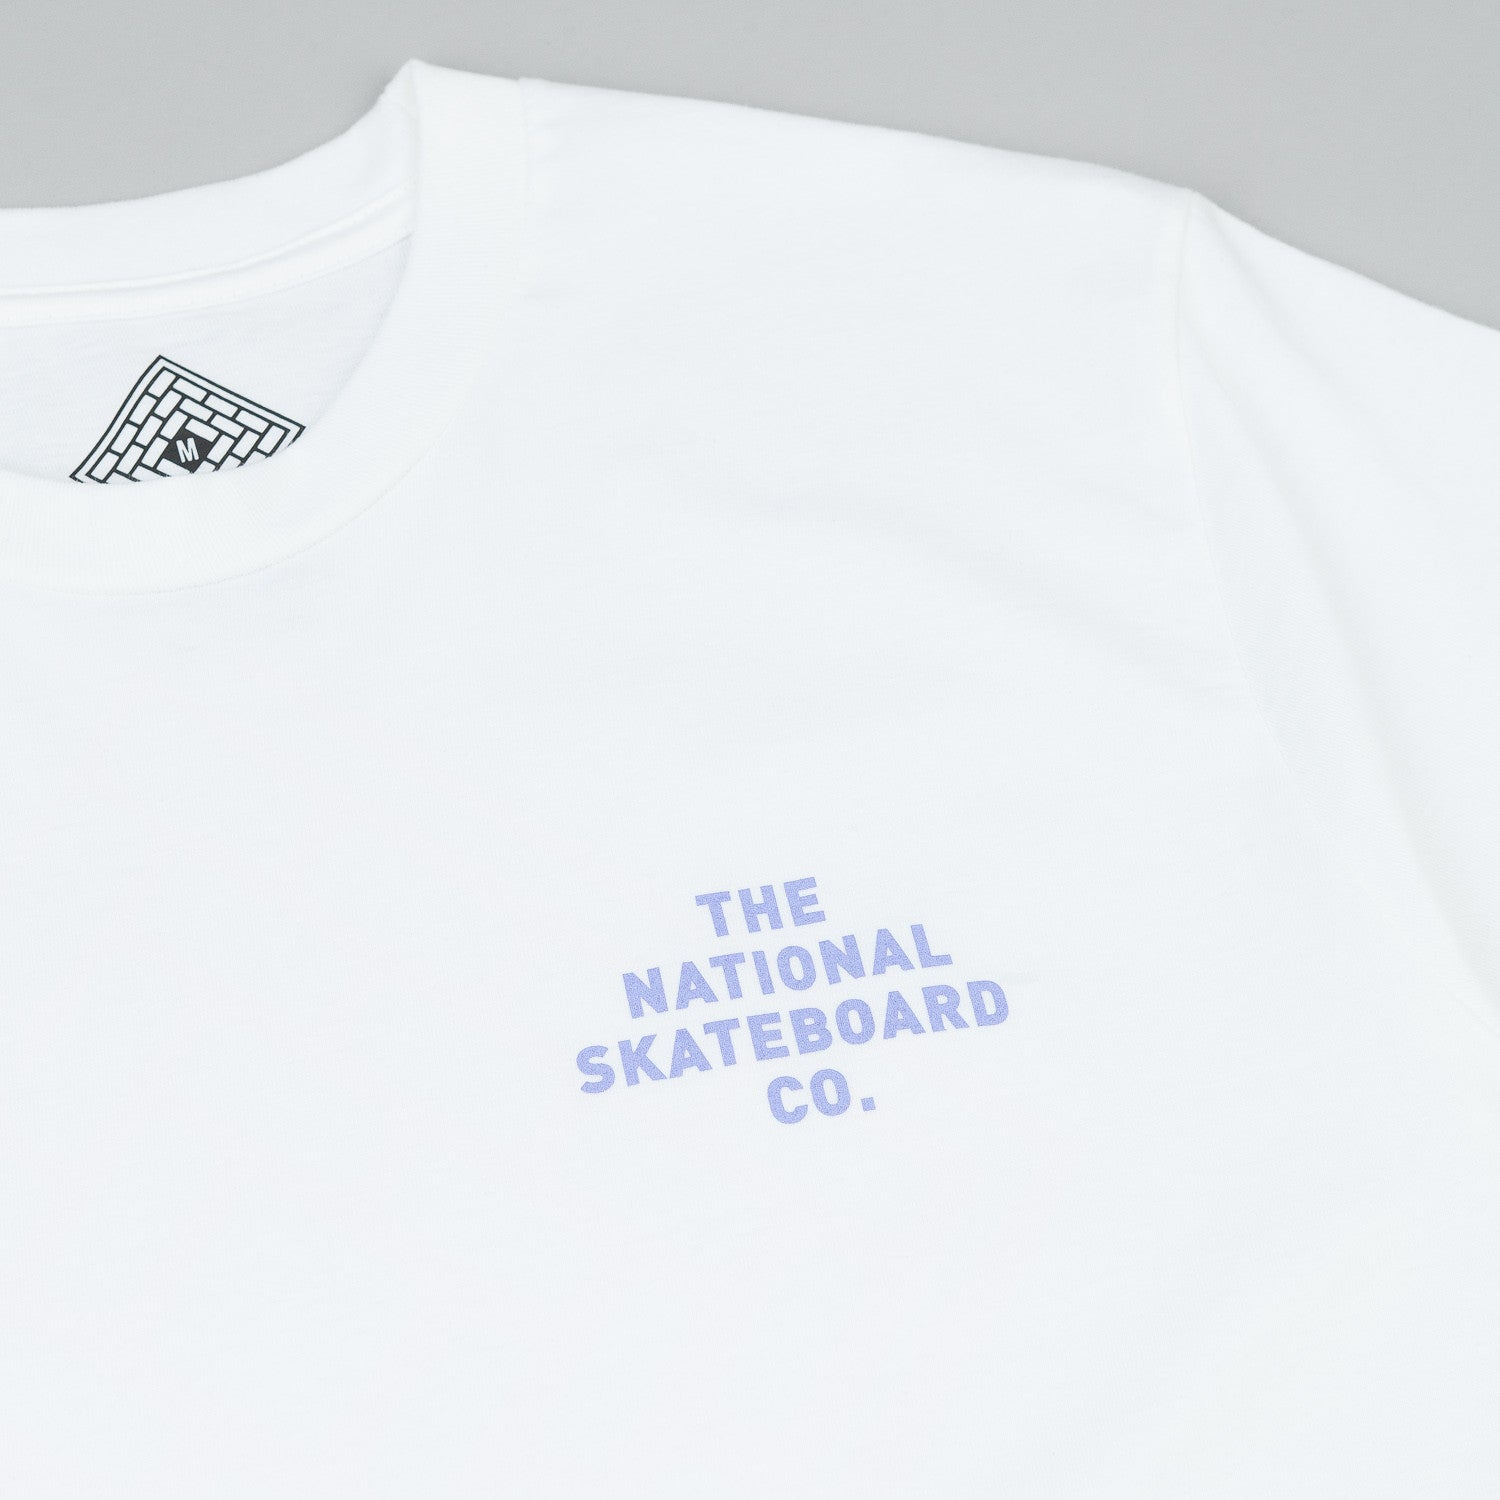 The National Skateboard Co Logo T-Shirt - White / Pink